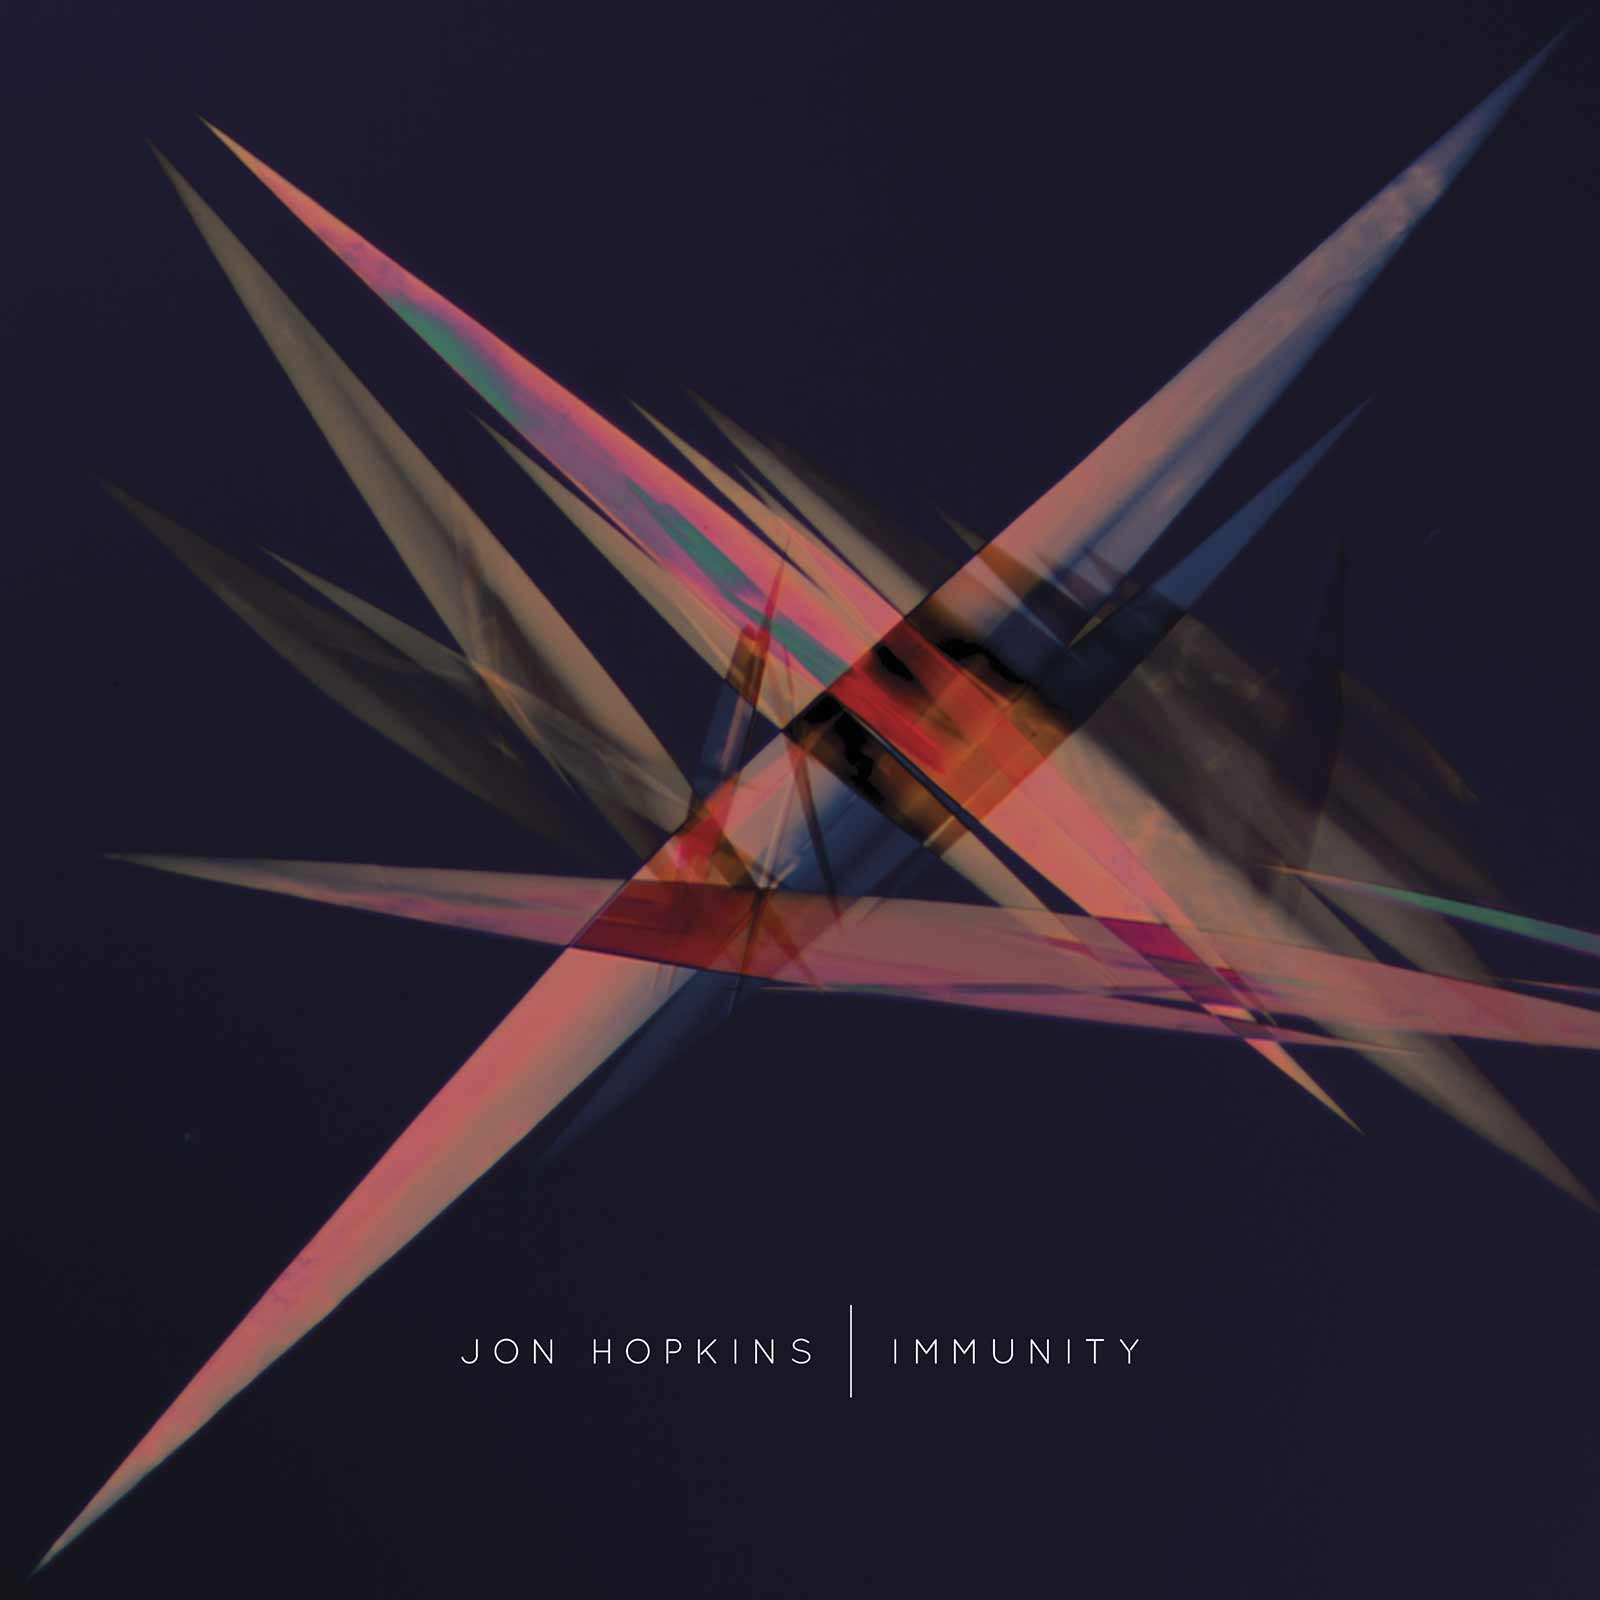 The album art for Jon Hopkins' Immunity